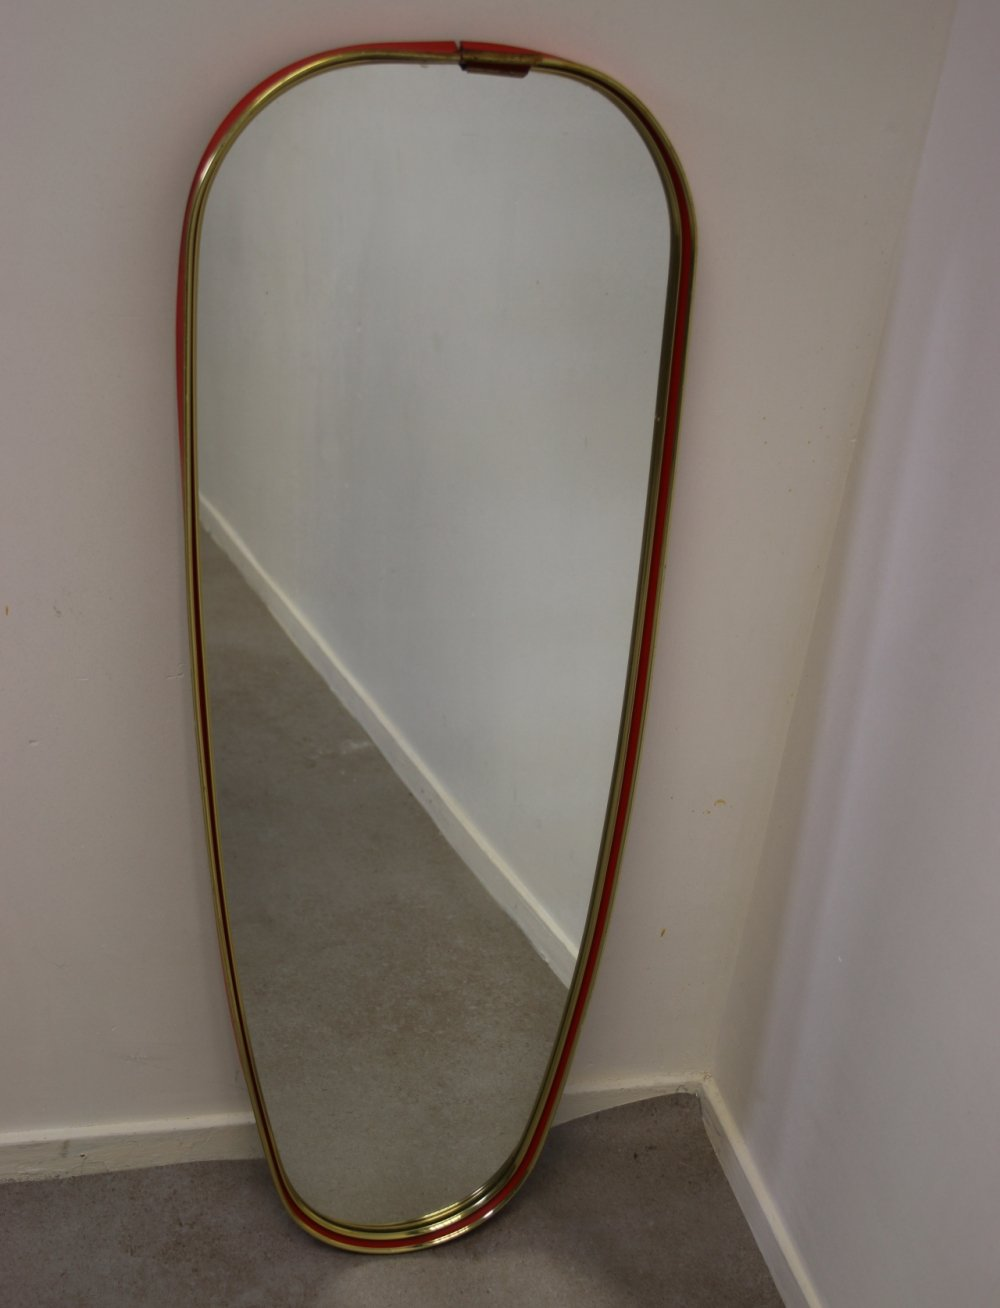 Vintage wall mirror with red border, 1960s